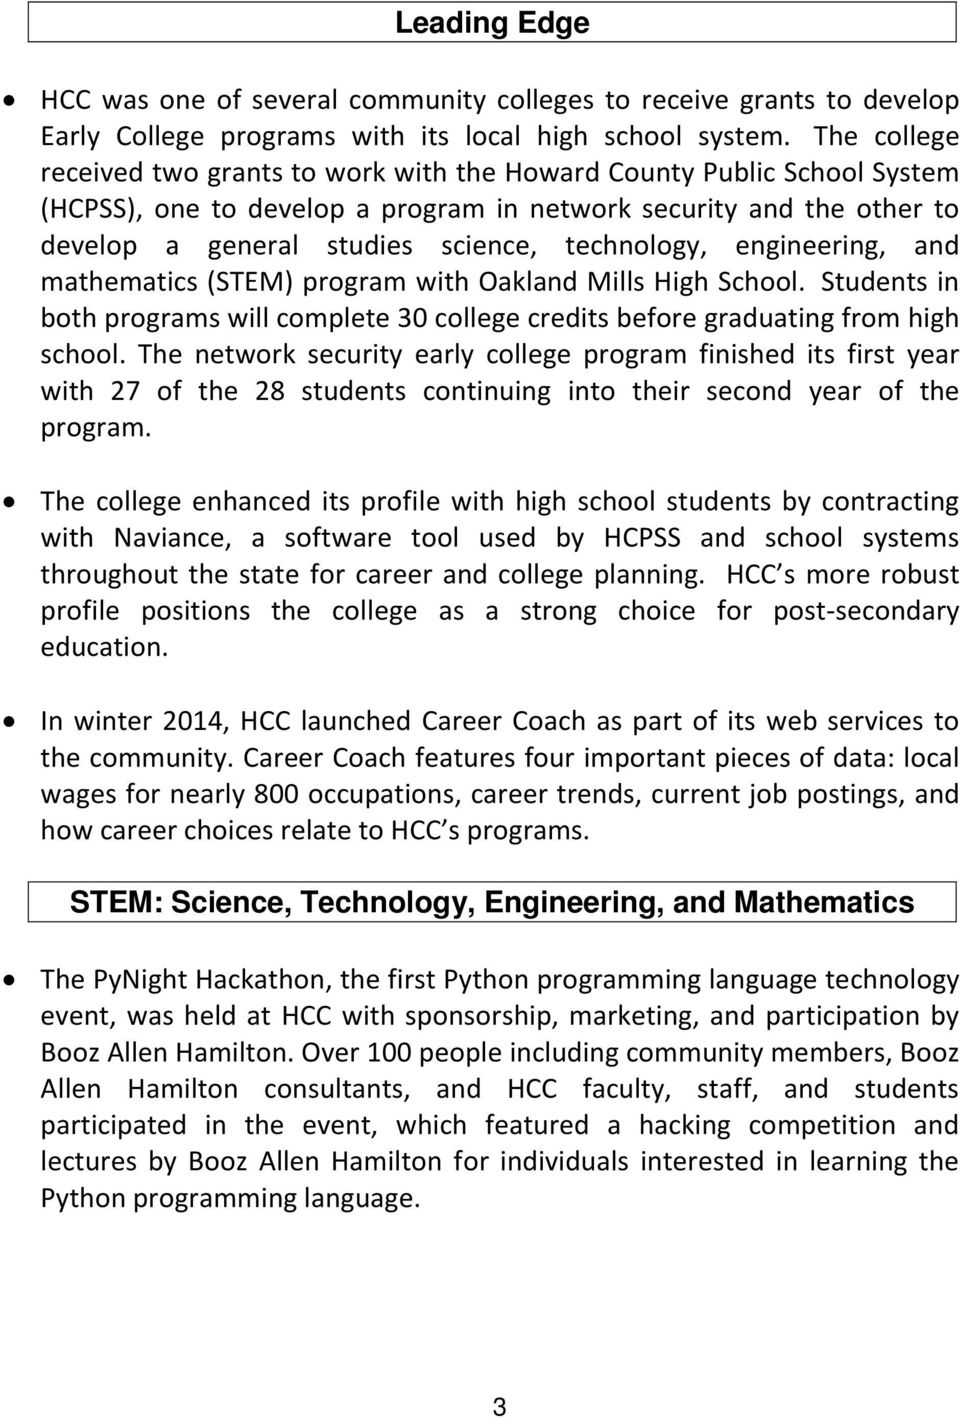 technology, engineering, and mathematics (STEM) program with Oakland Mills High School. Students in both programs will complete 30 college credits before graduating from high school.